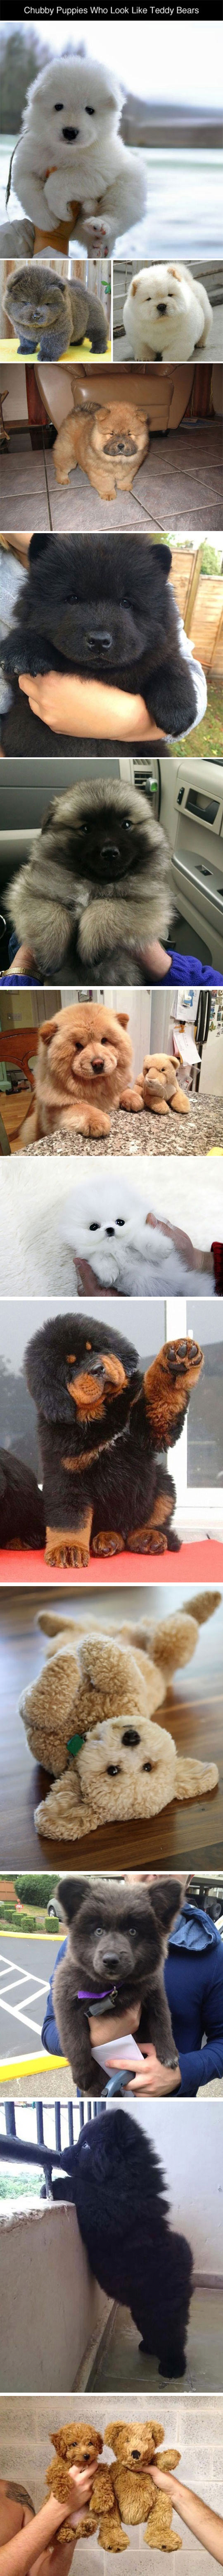 chubby-puppies-teddy-bears